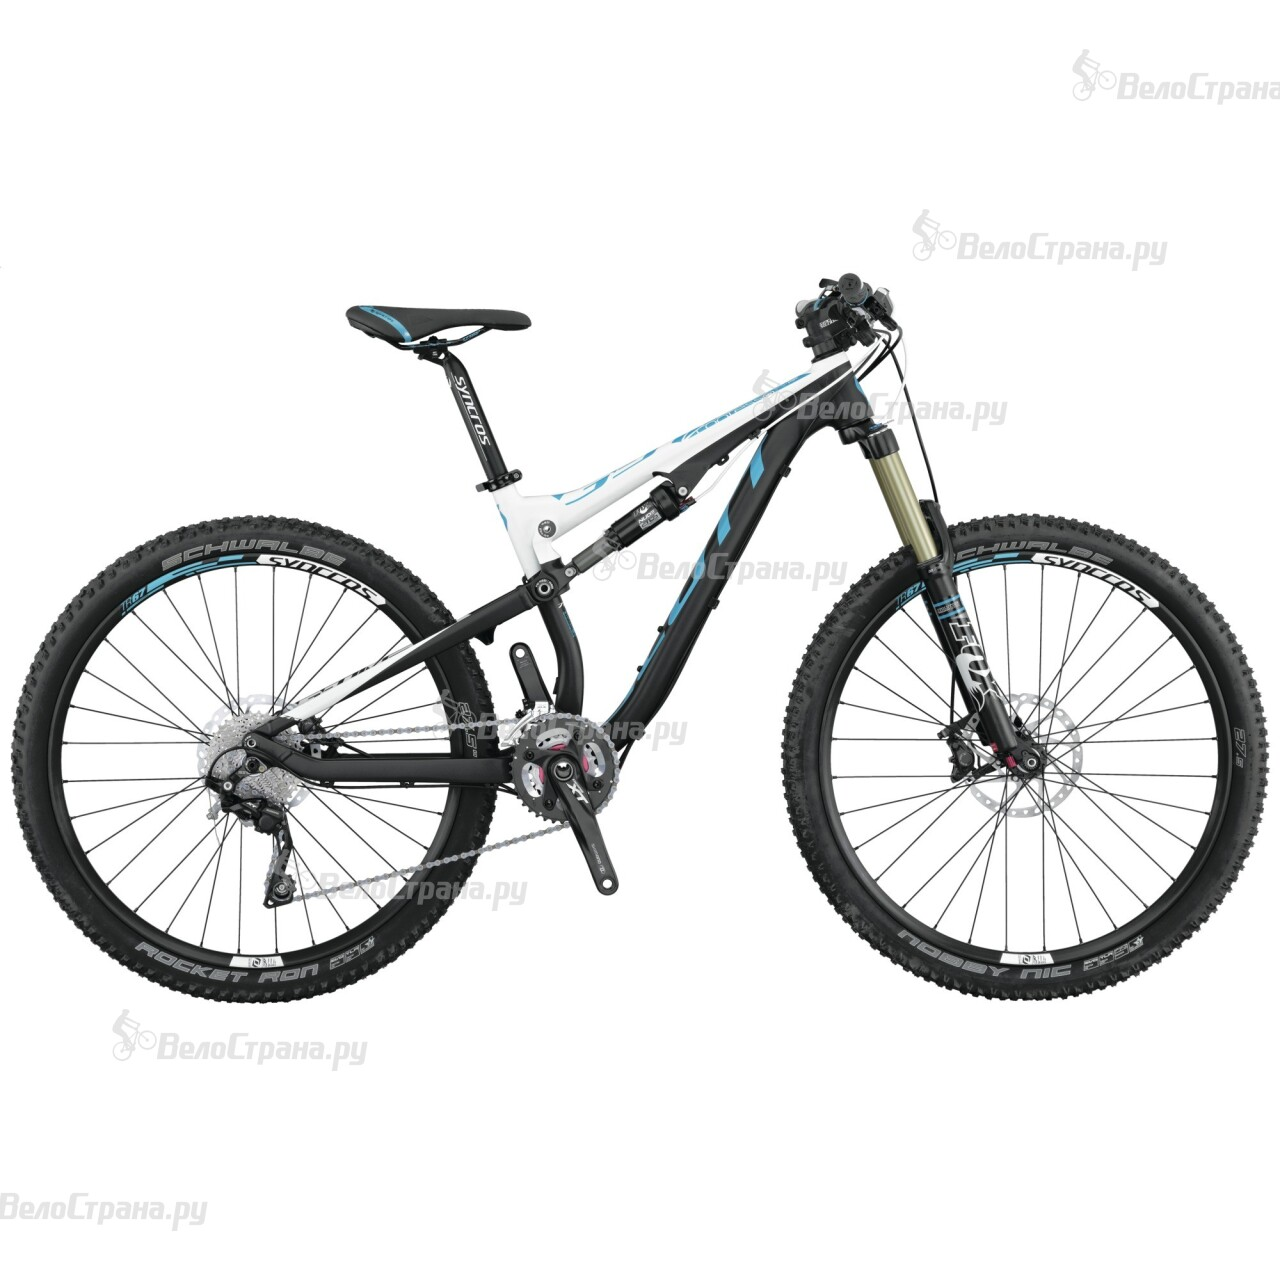 Велосипед Scott Contessa Genius 710 (2015) велосипед scott contessa genius 710 2015